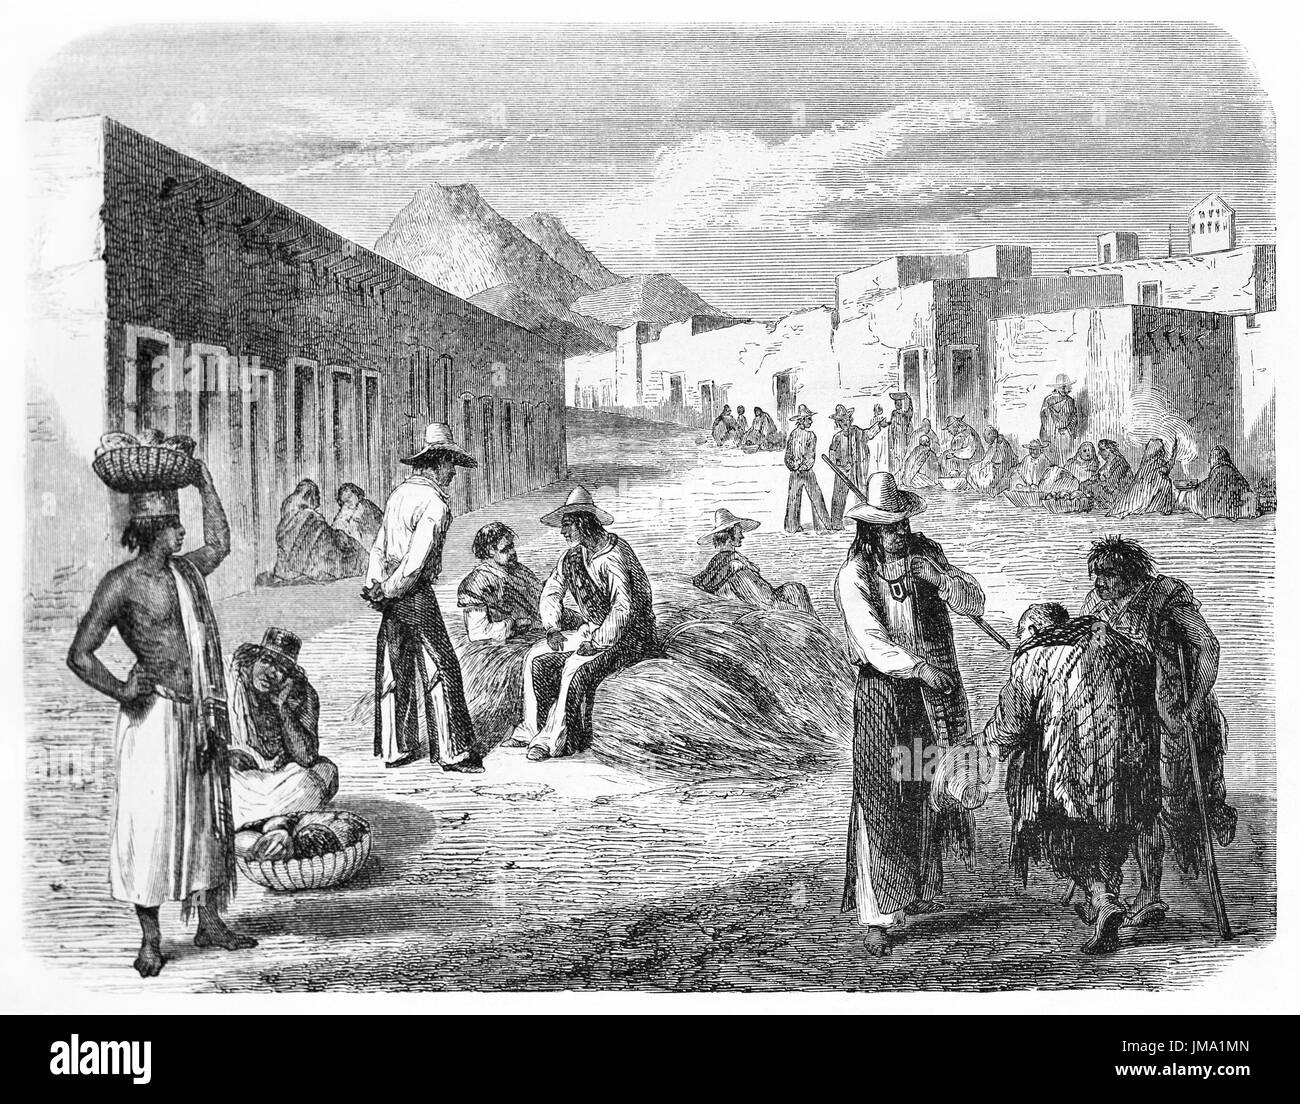 Old illustration of Mexican people in Chihuahua market. Created by Fouduier and Gauchard, published on Le Tour du Monde, Paris, 1861 - Stock Image